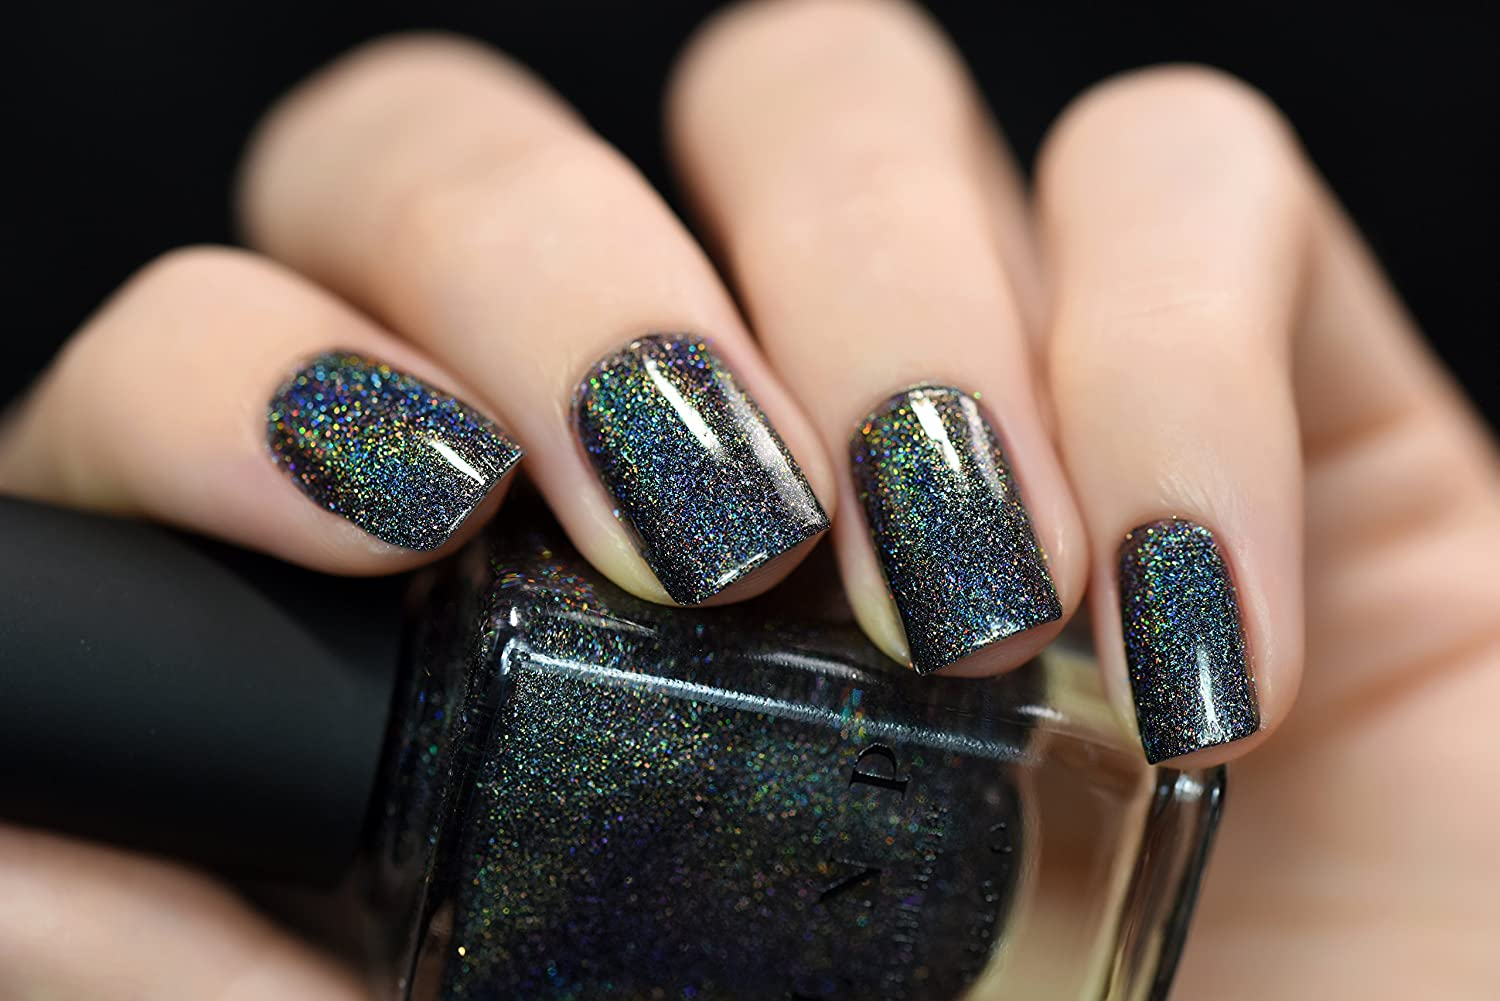 Amazon.com : ILNP Missed Calls - Black Holographic Nail Polish : Beauty